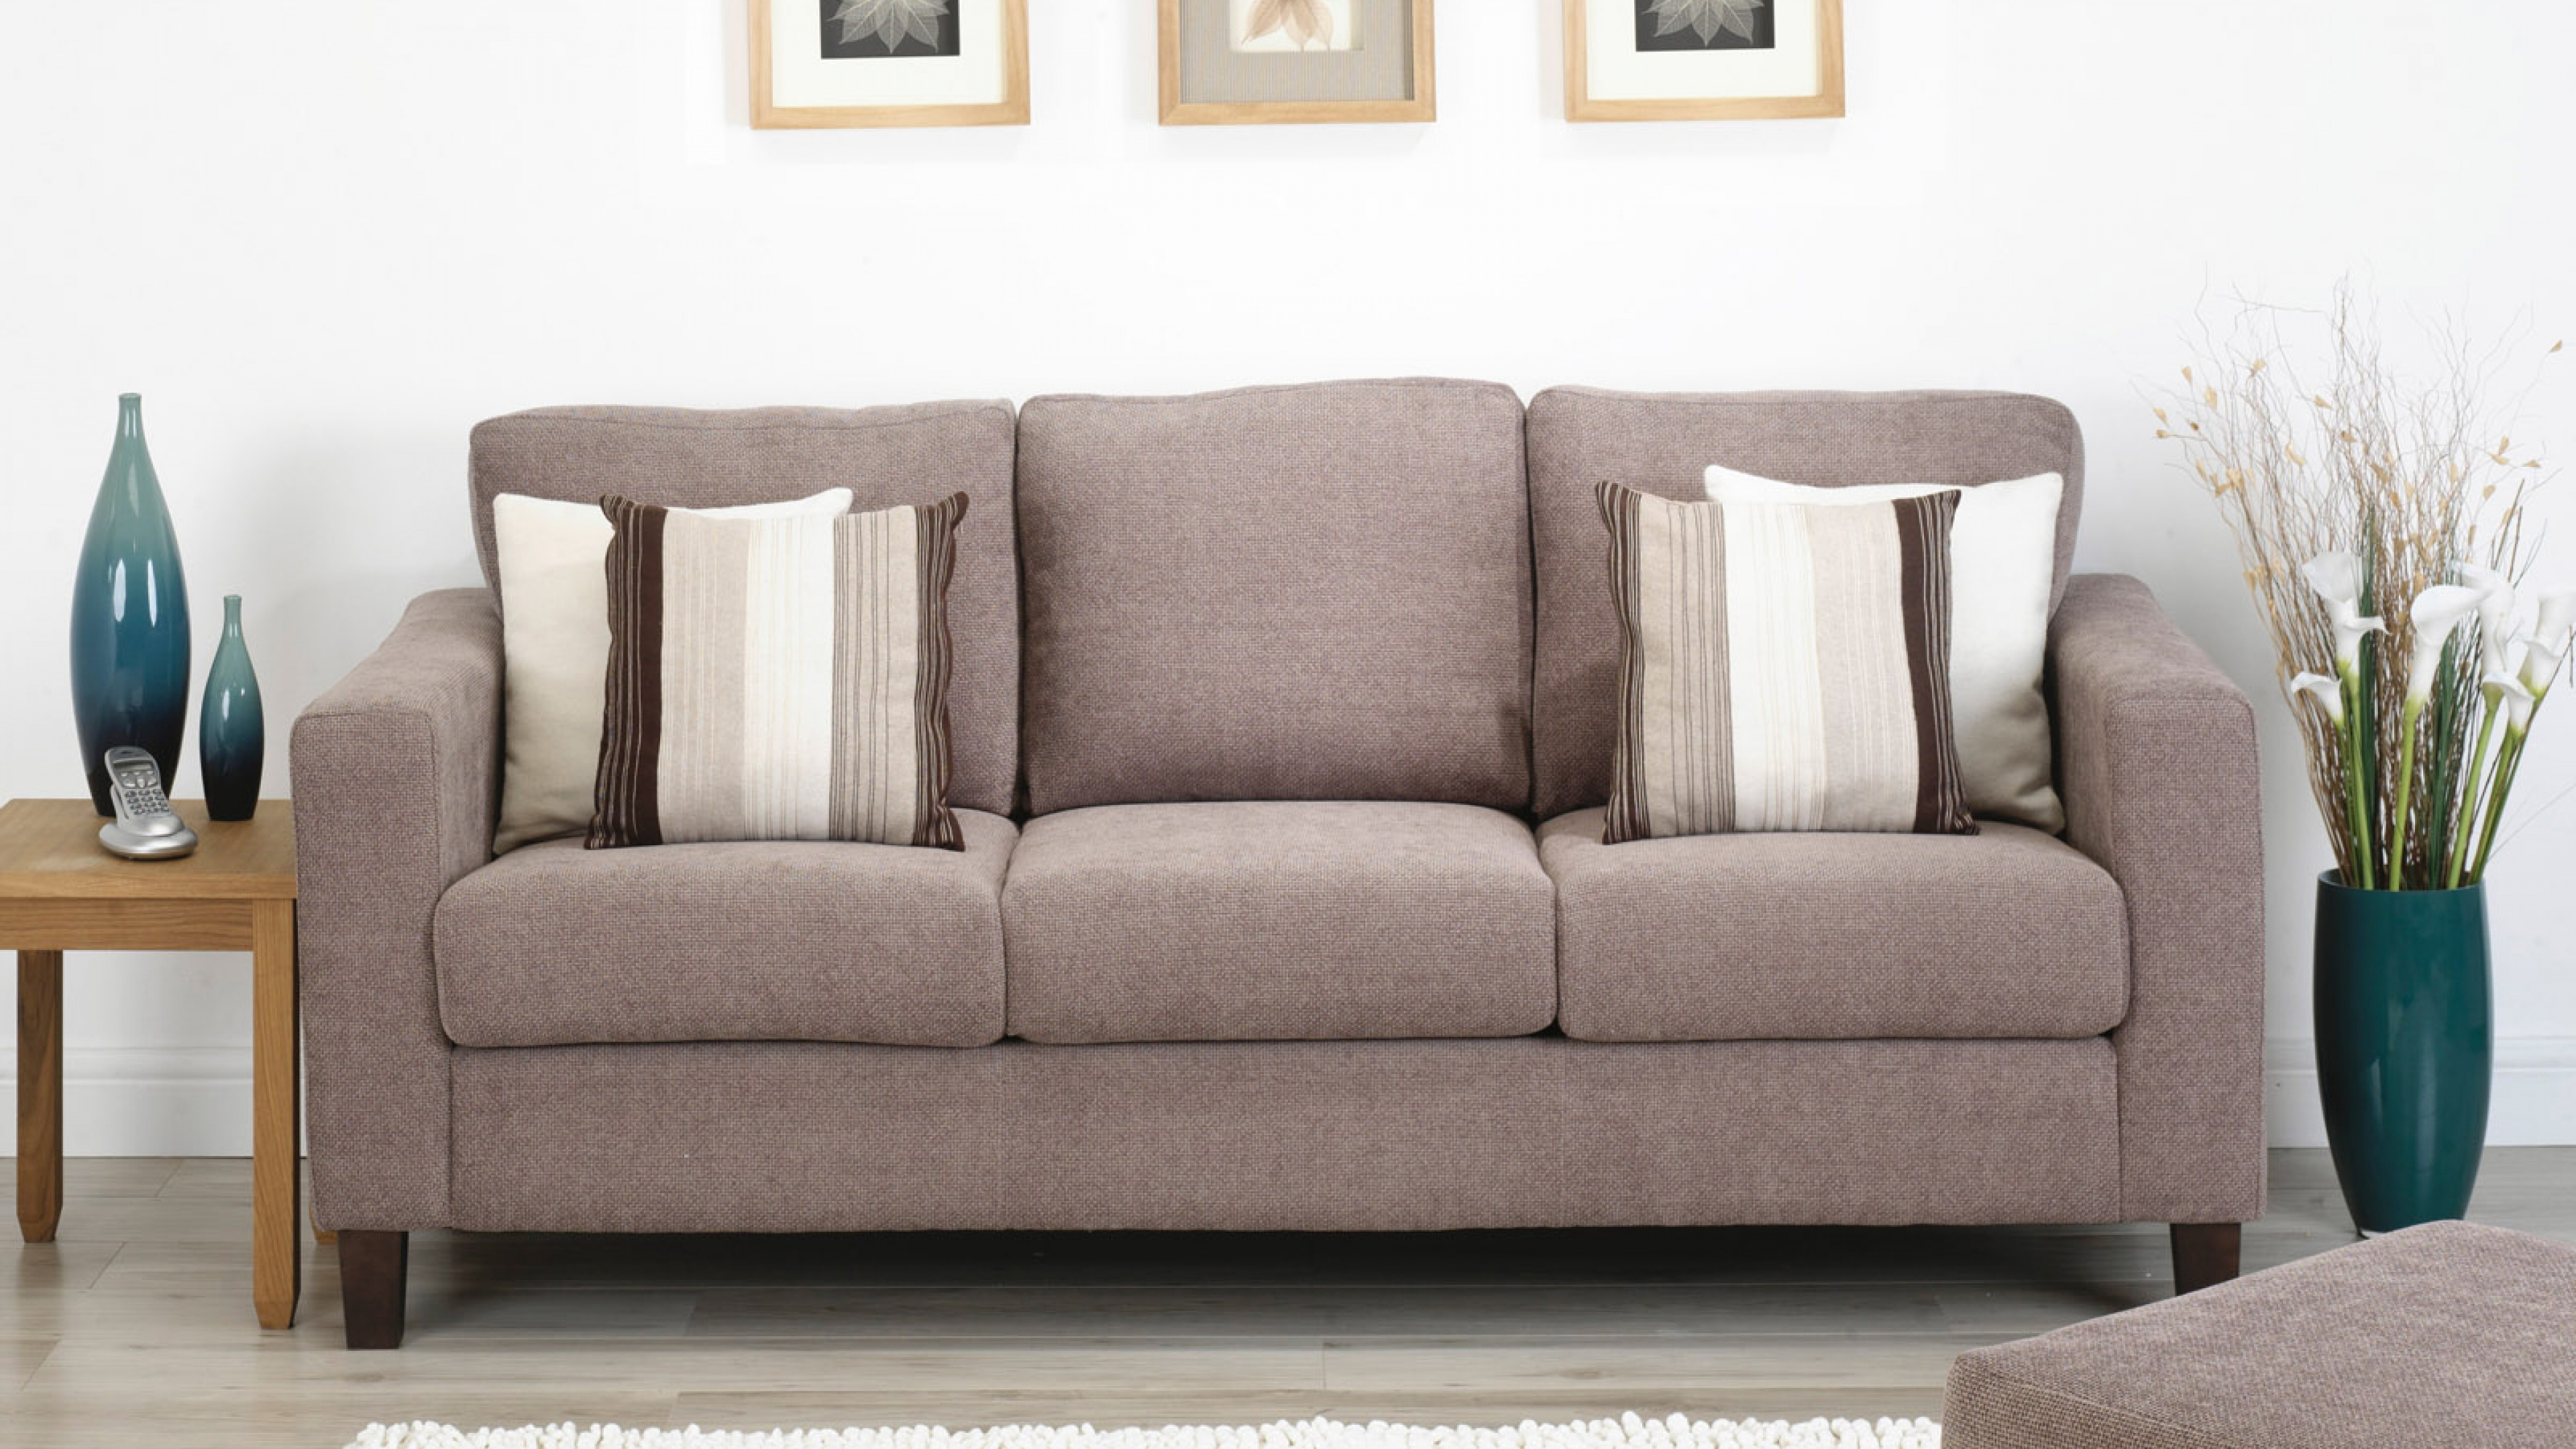 gray sofas with sidetable and sofa pillows